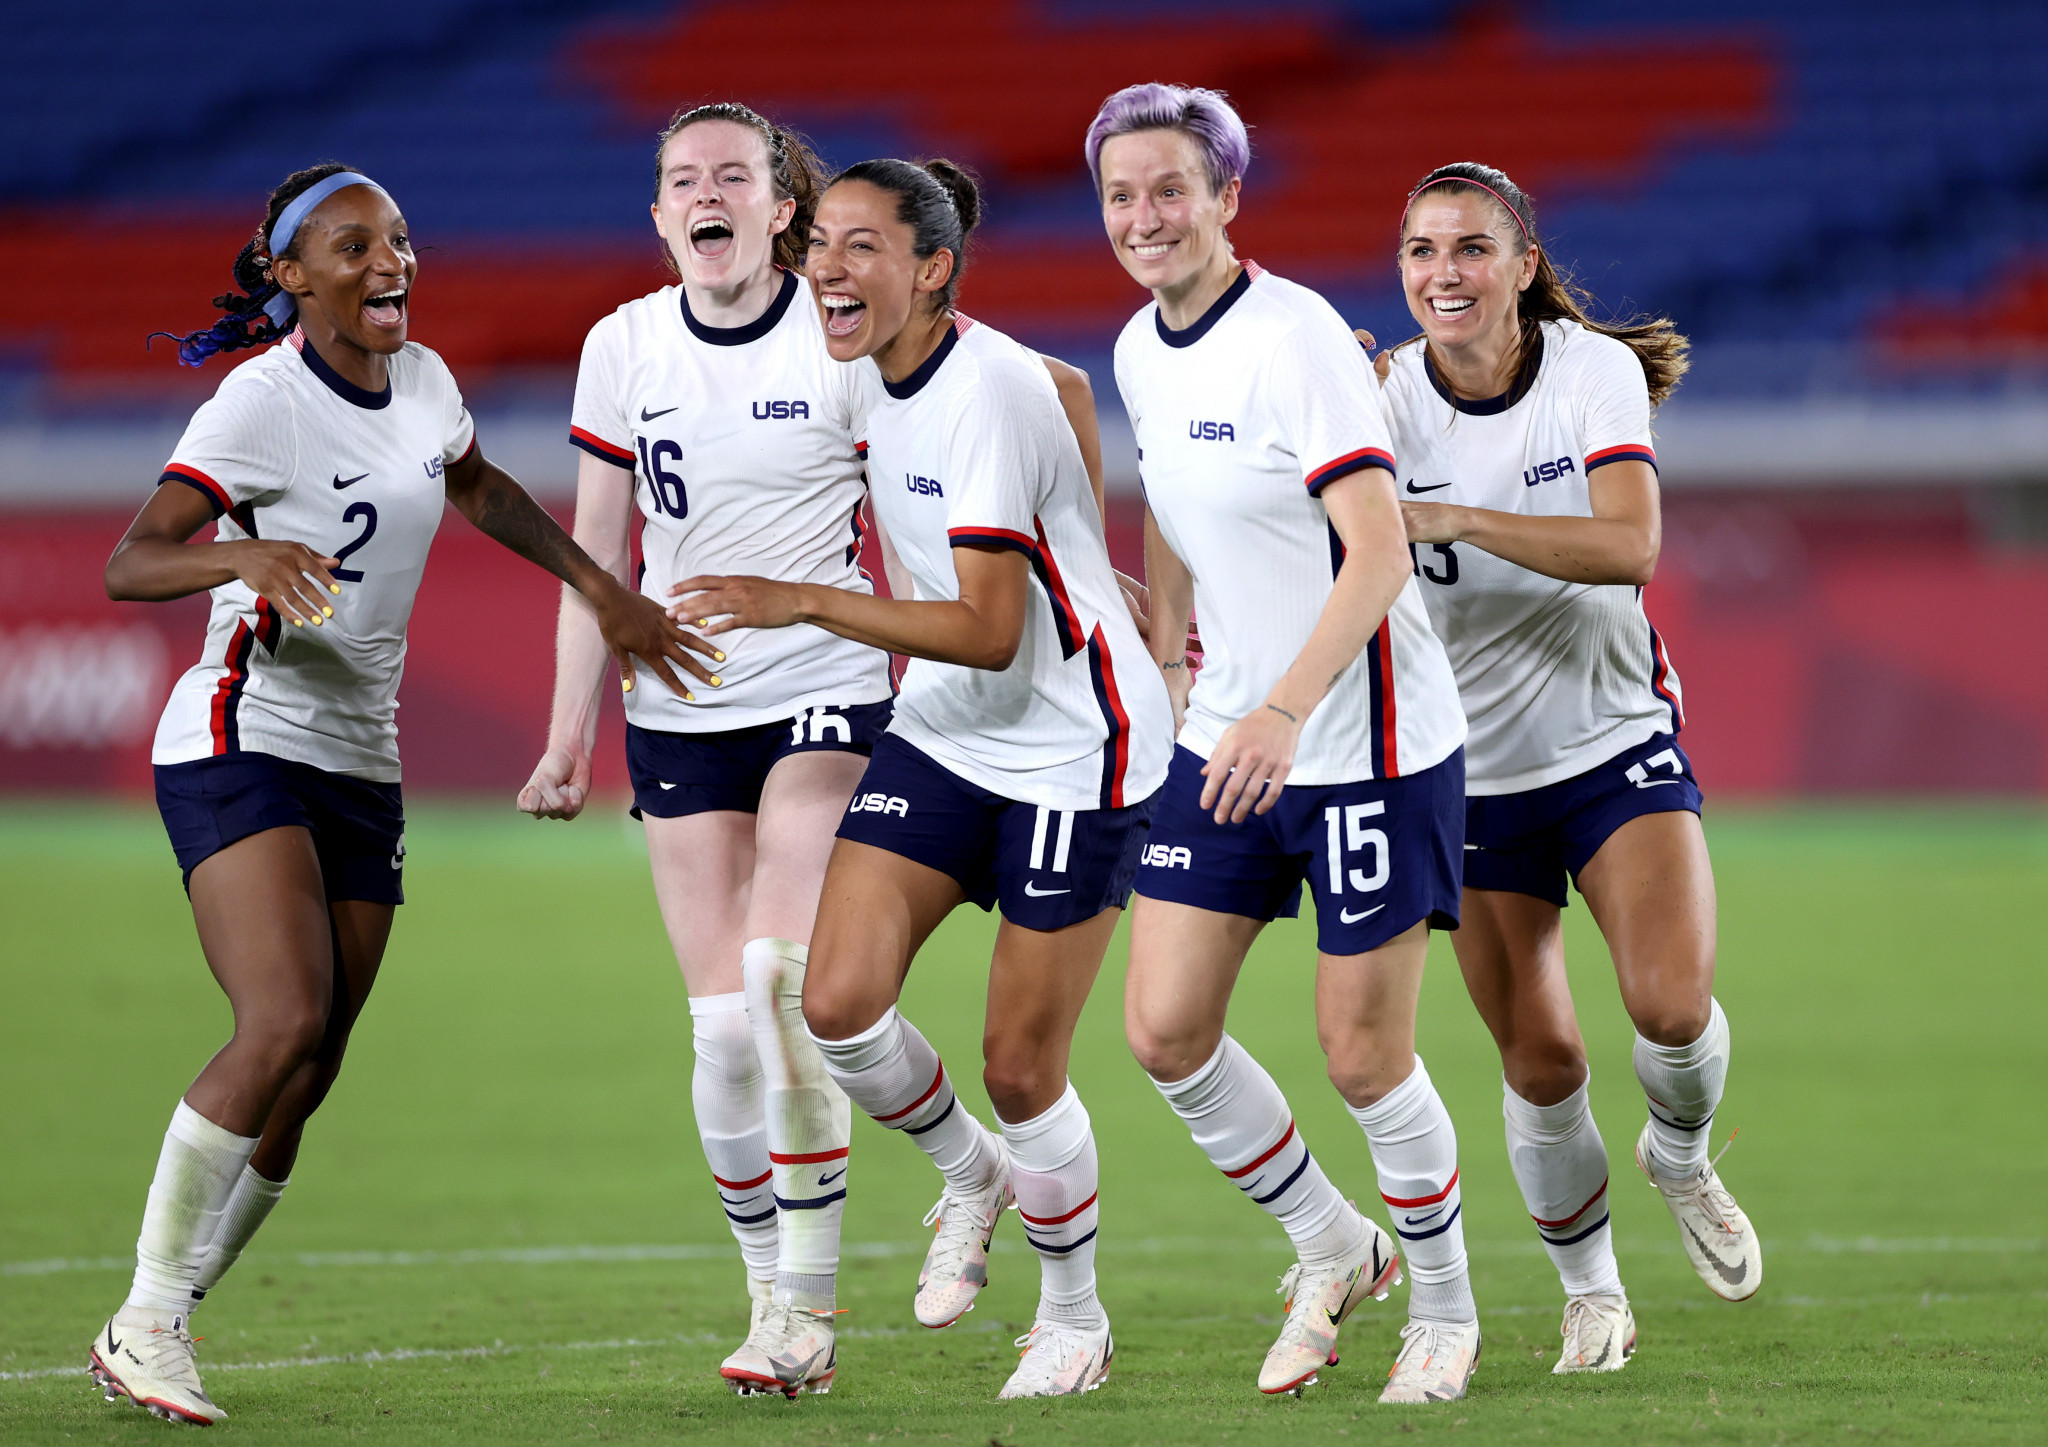 The United States celebrate reaching the women's football semi-finals after defeating The Netherlands on penalties ©Getty Images